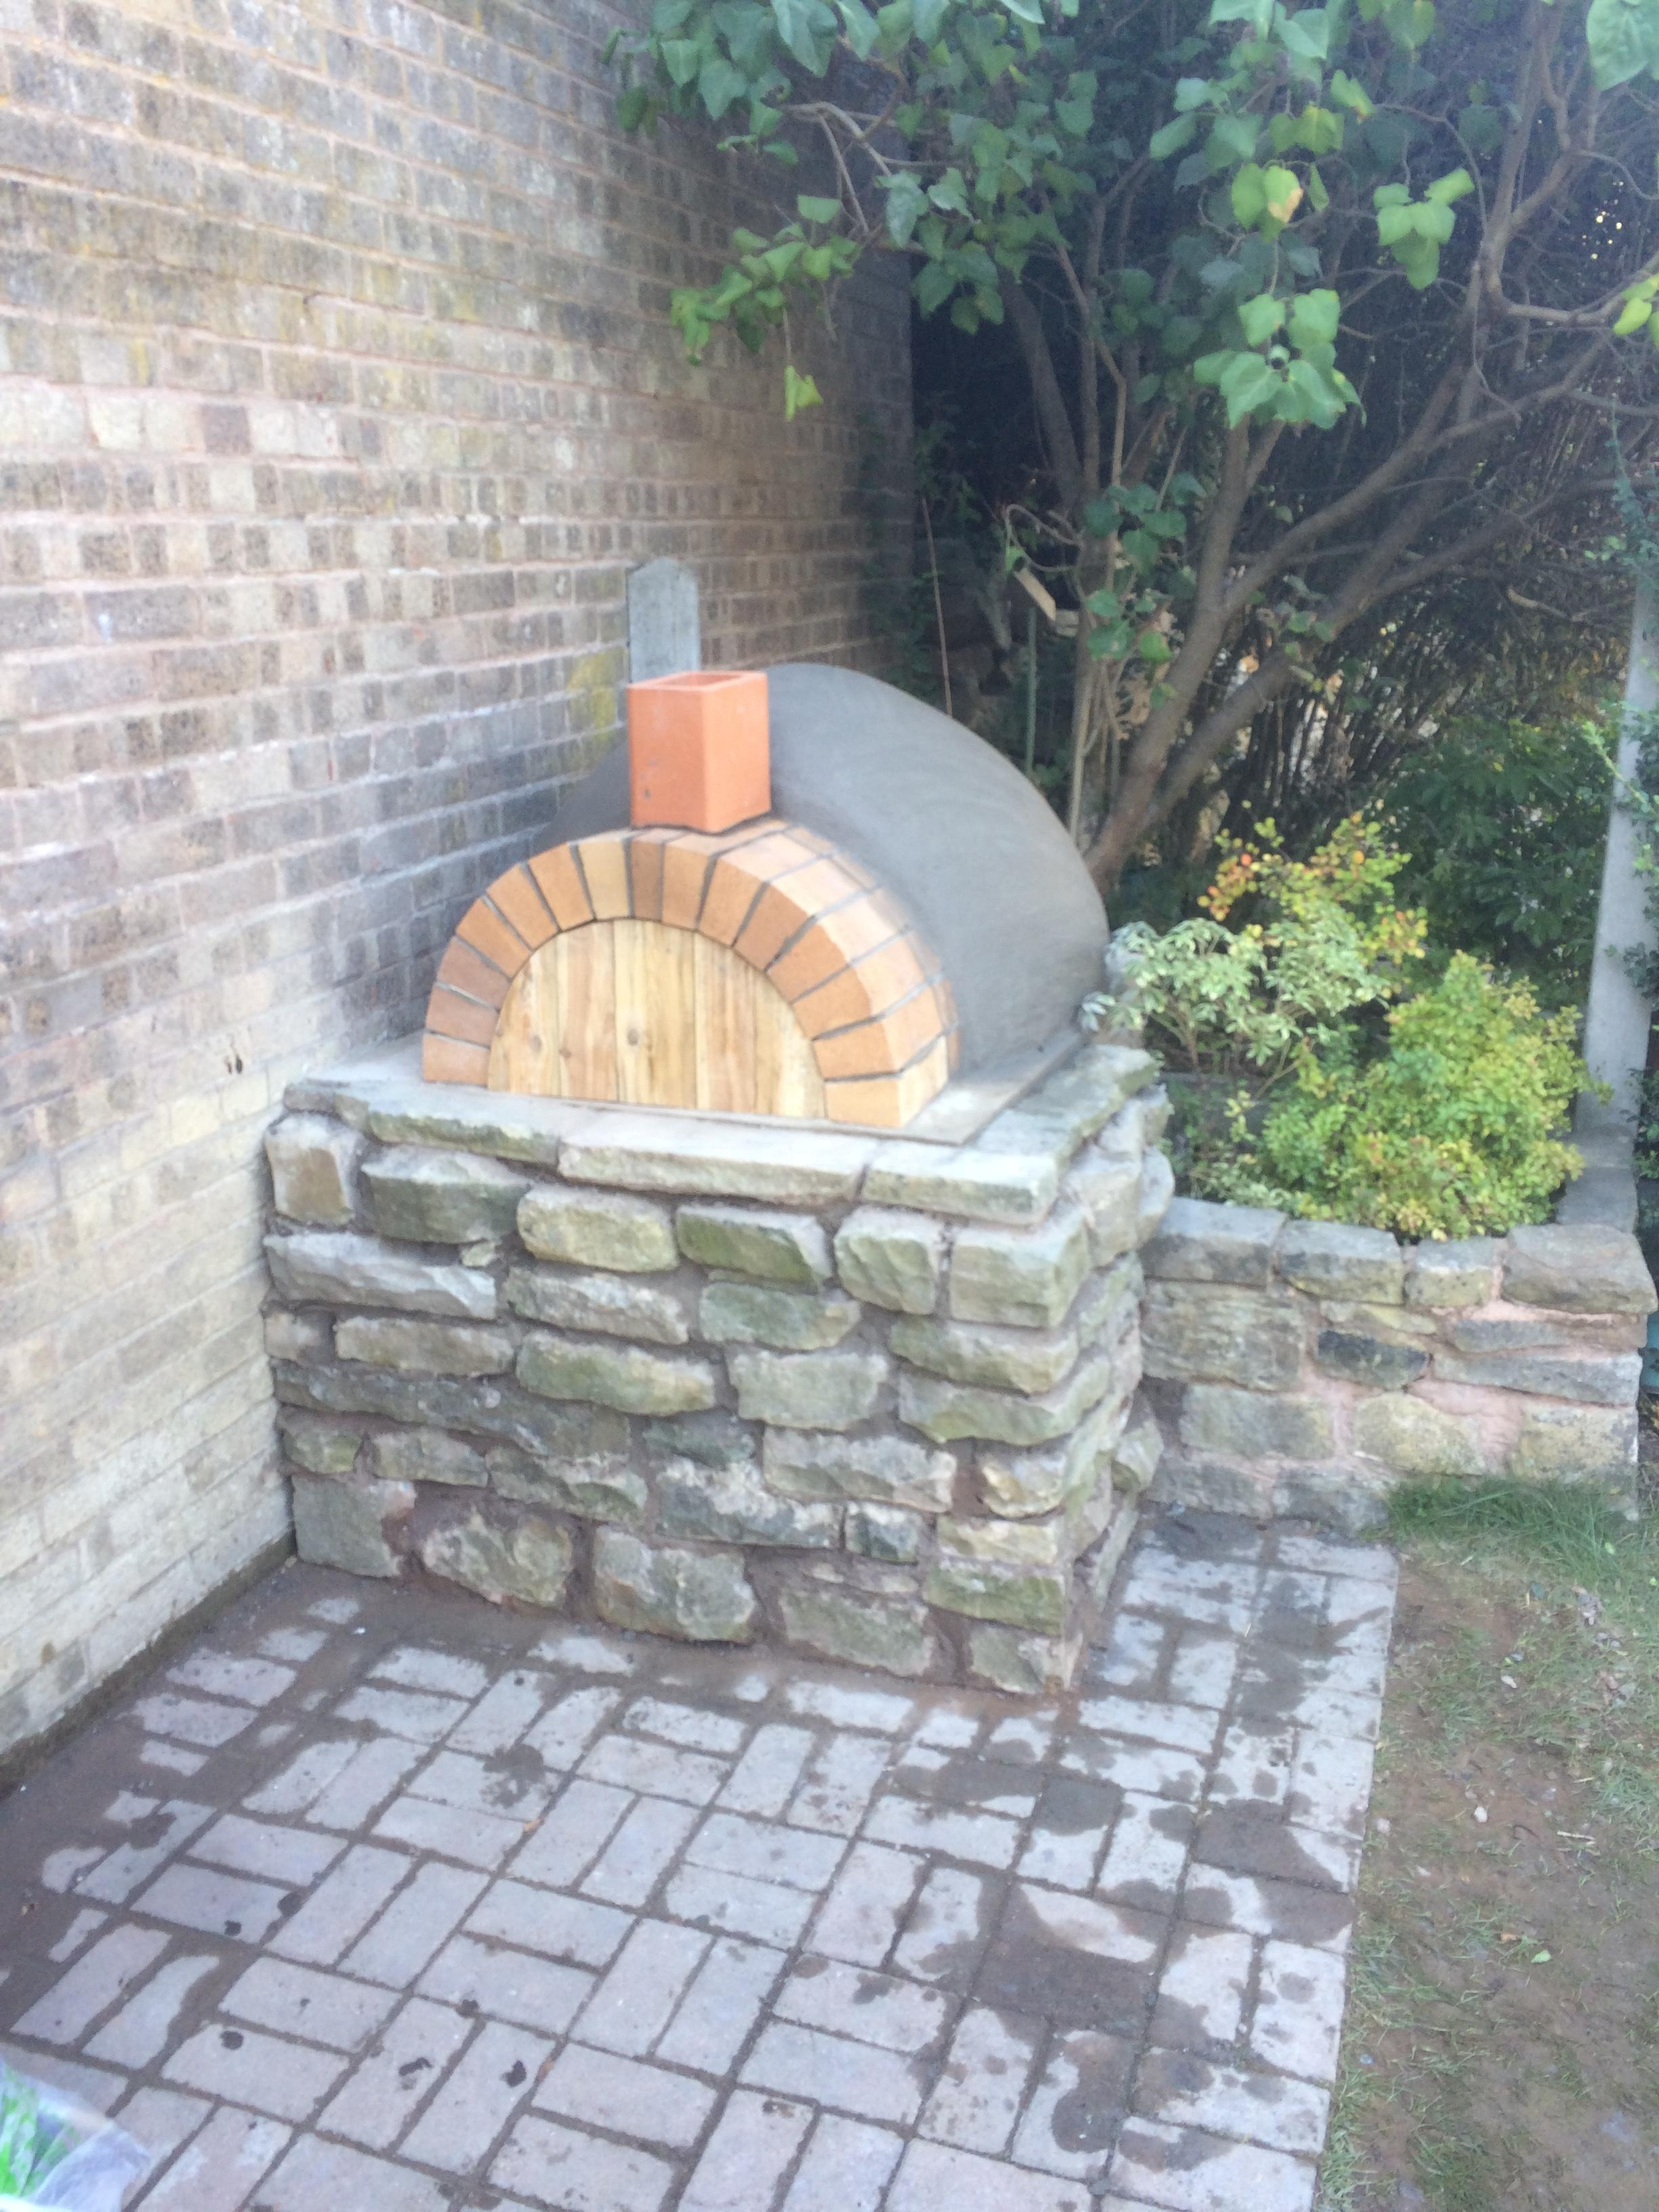 How to build an outdoor brick pizza oven step by step diy for Homemade diy